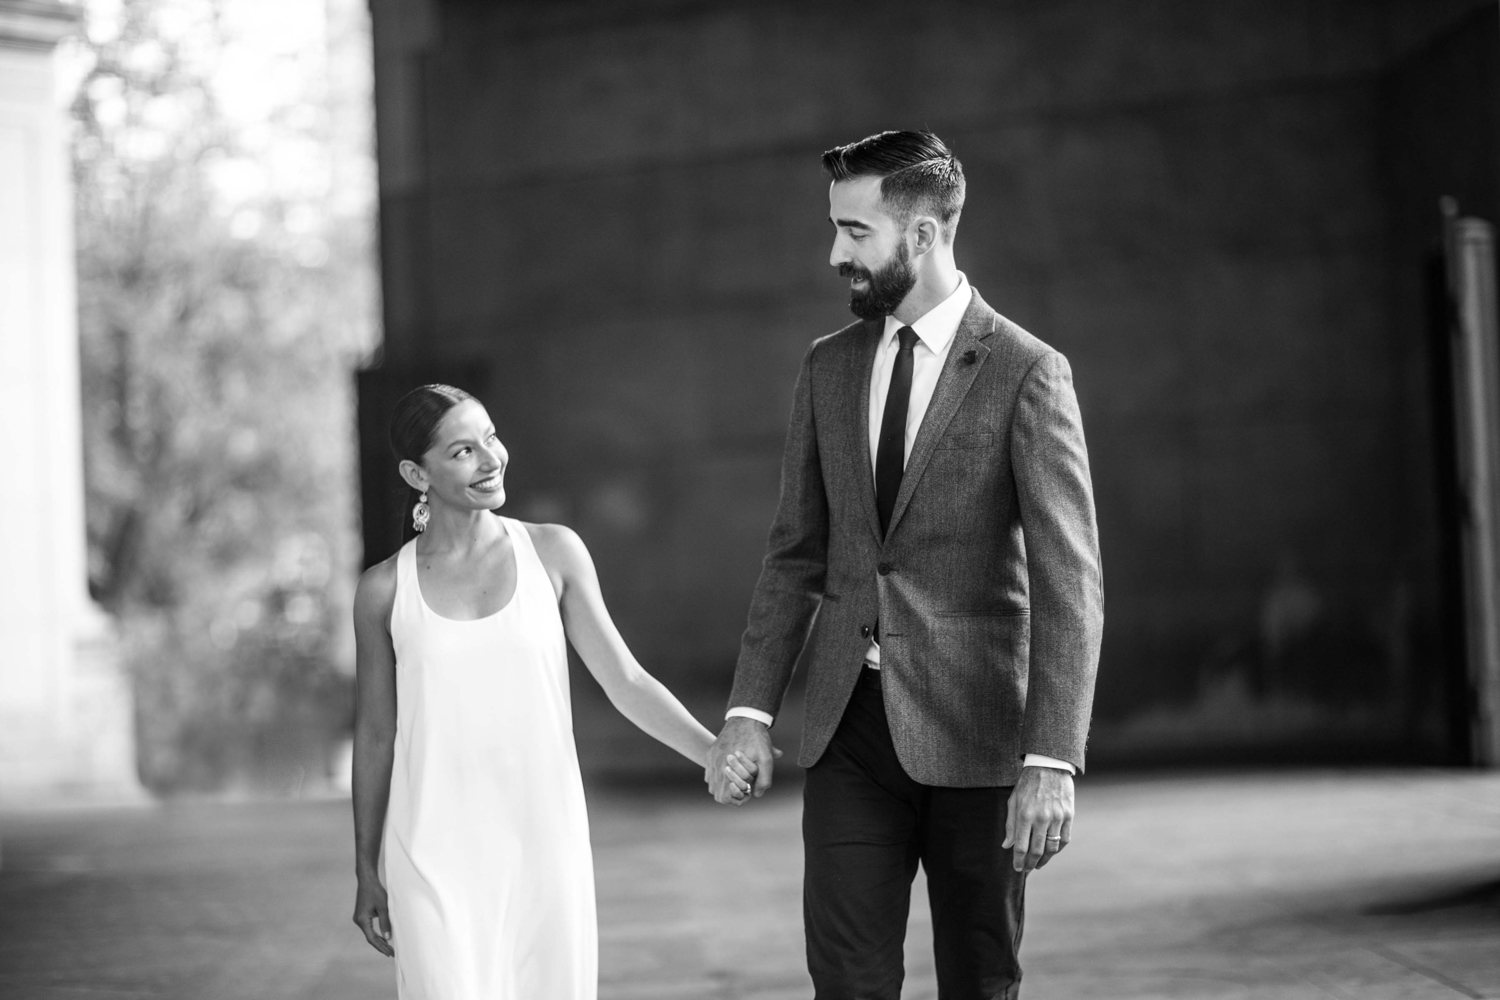 Black and white portrait of newlyweds holding hands after their wedding.